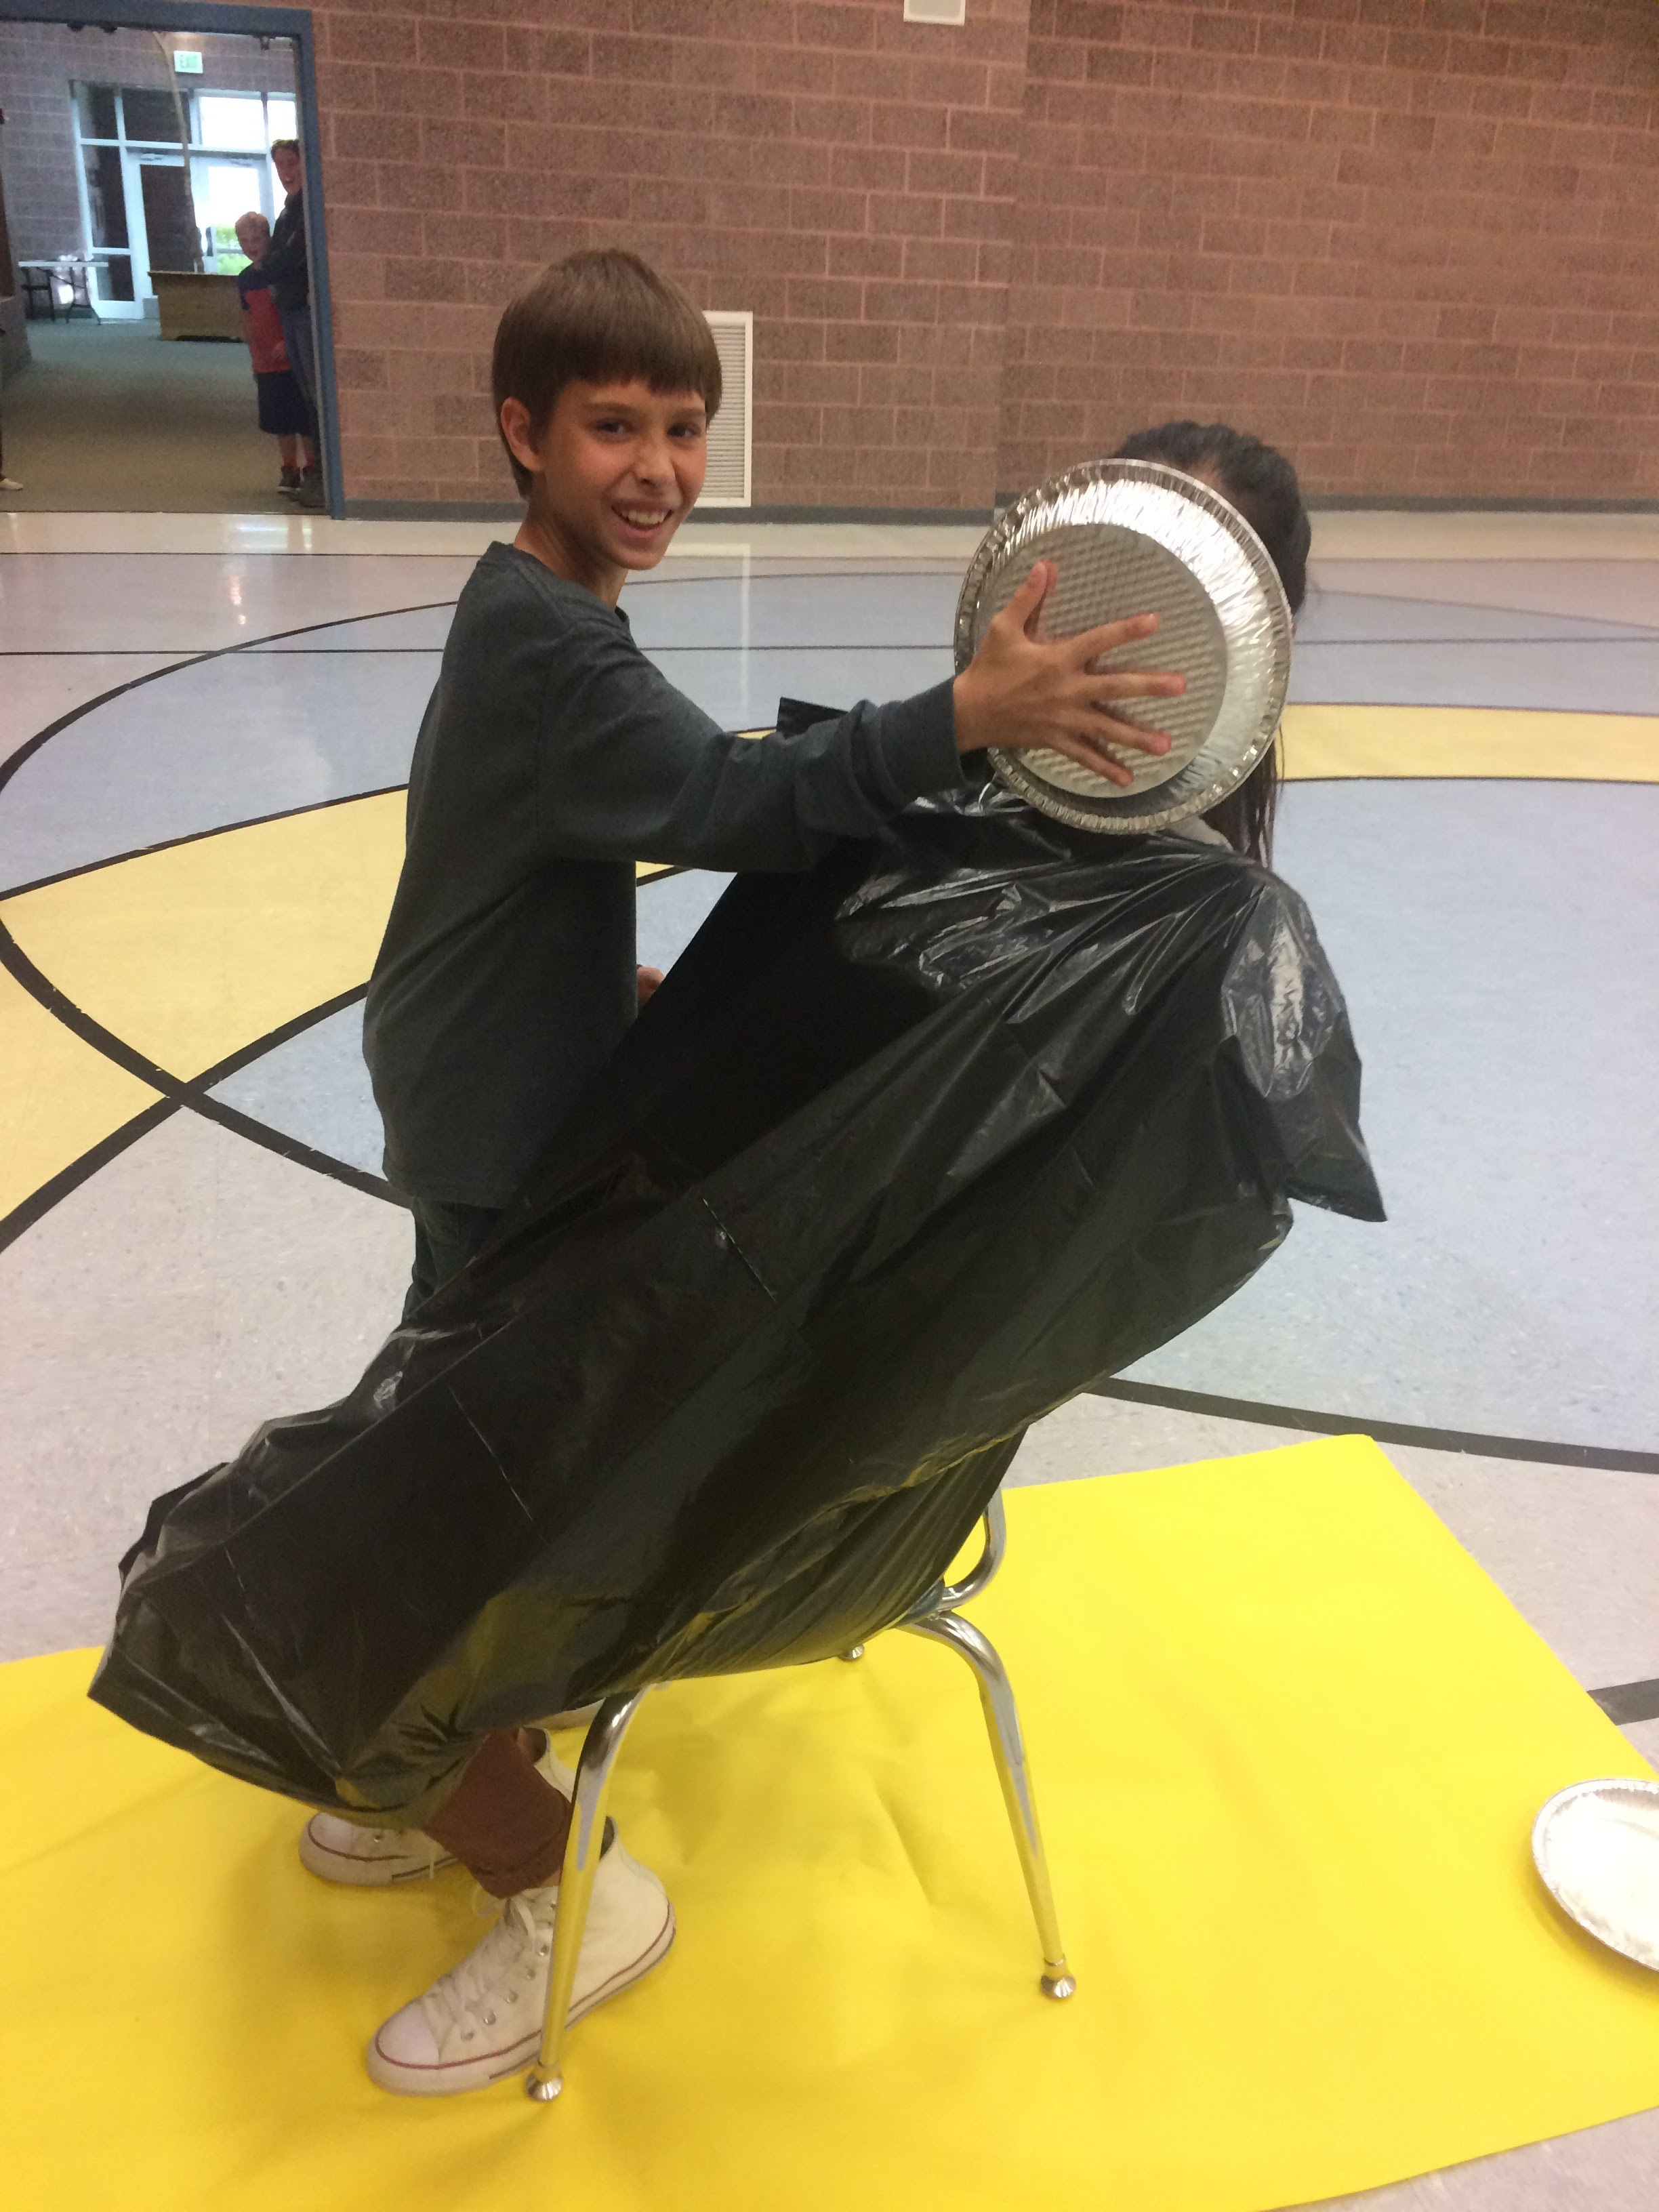 Miss Carina gets pied!